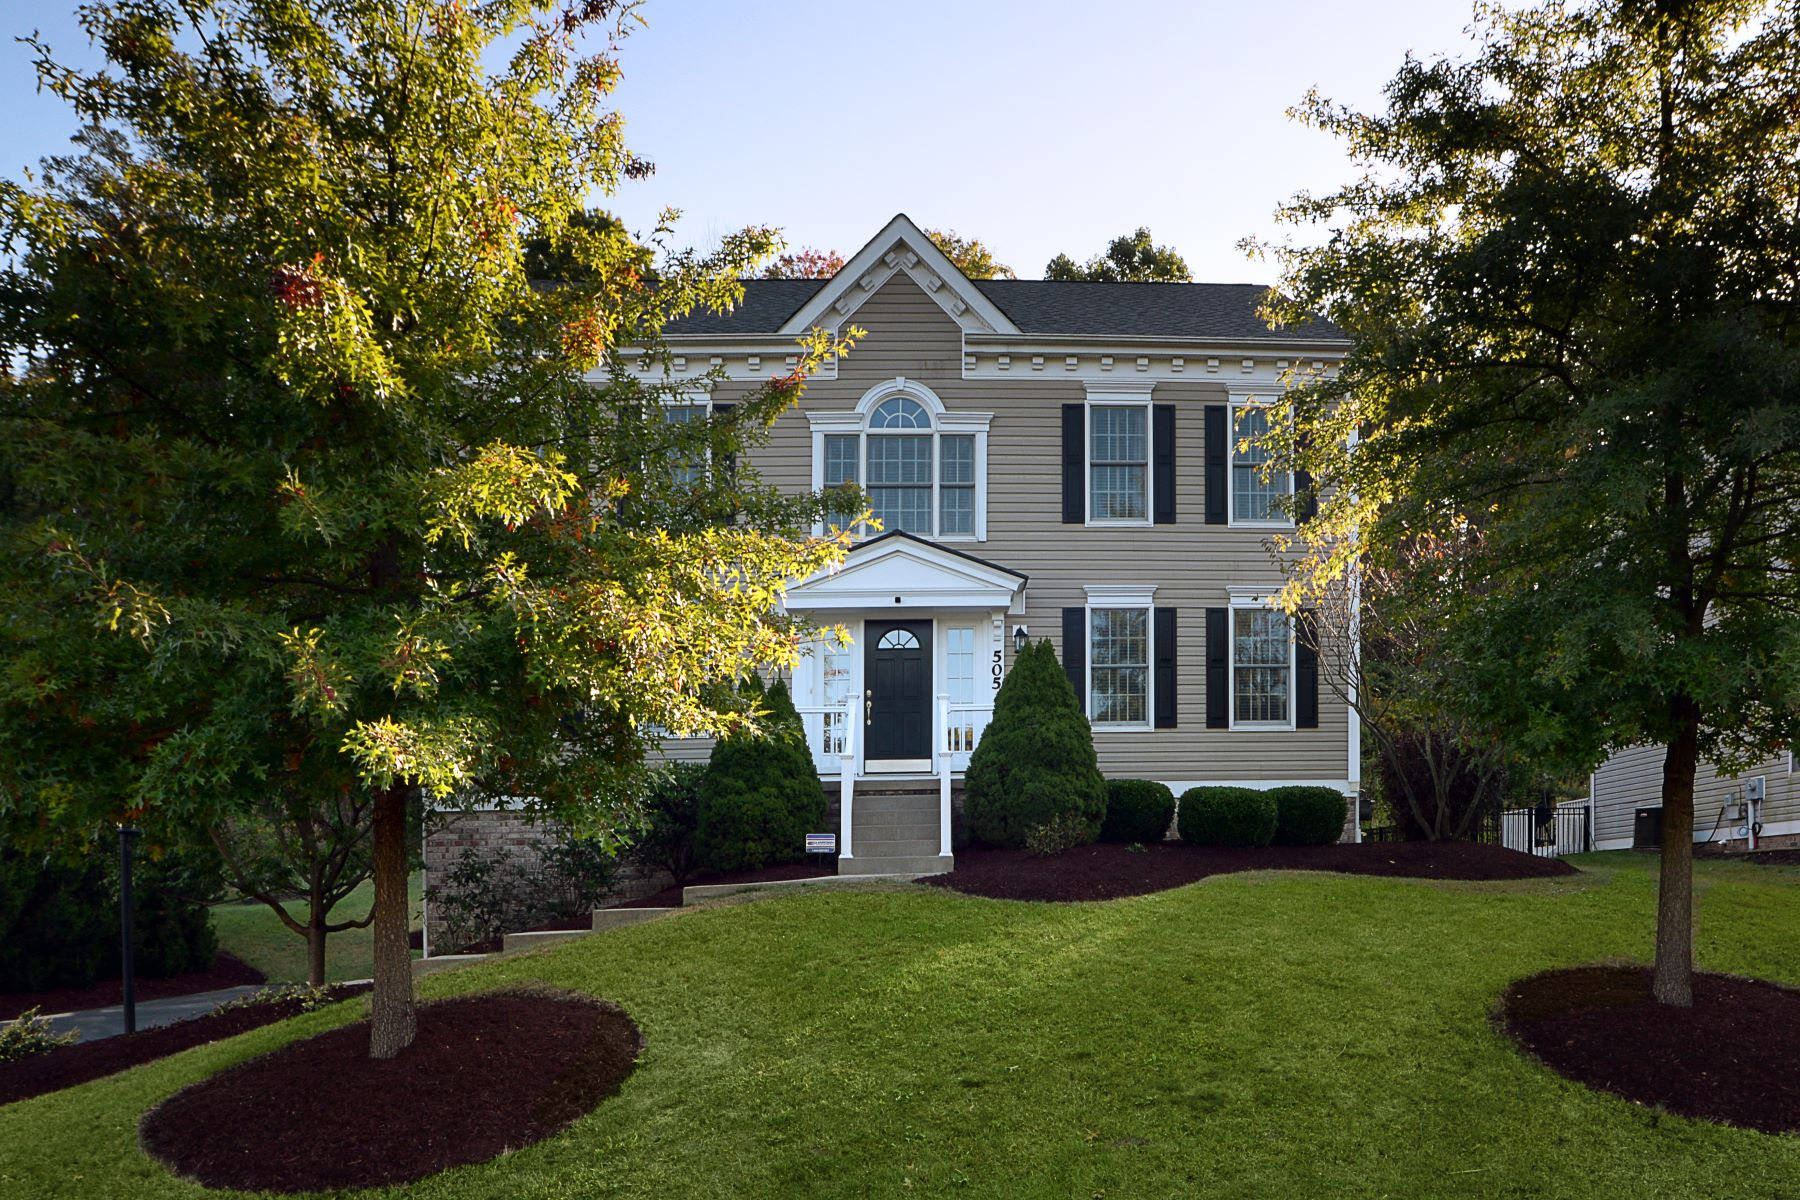 Single Family Homes for Sale at Spacious Colonial on Quiet Cul-de-Sac 505 Rockport Place, Wexford, Pennsylvania 15090 United States